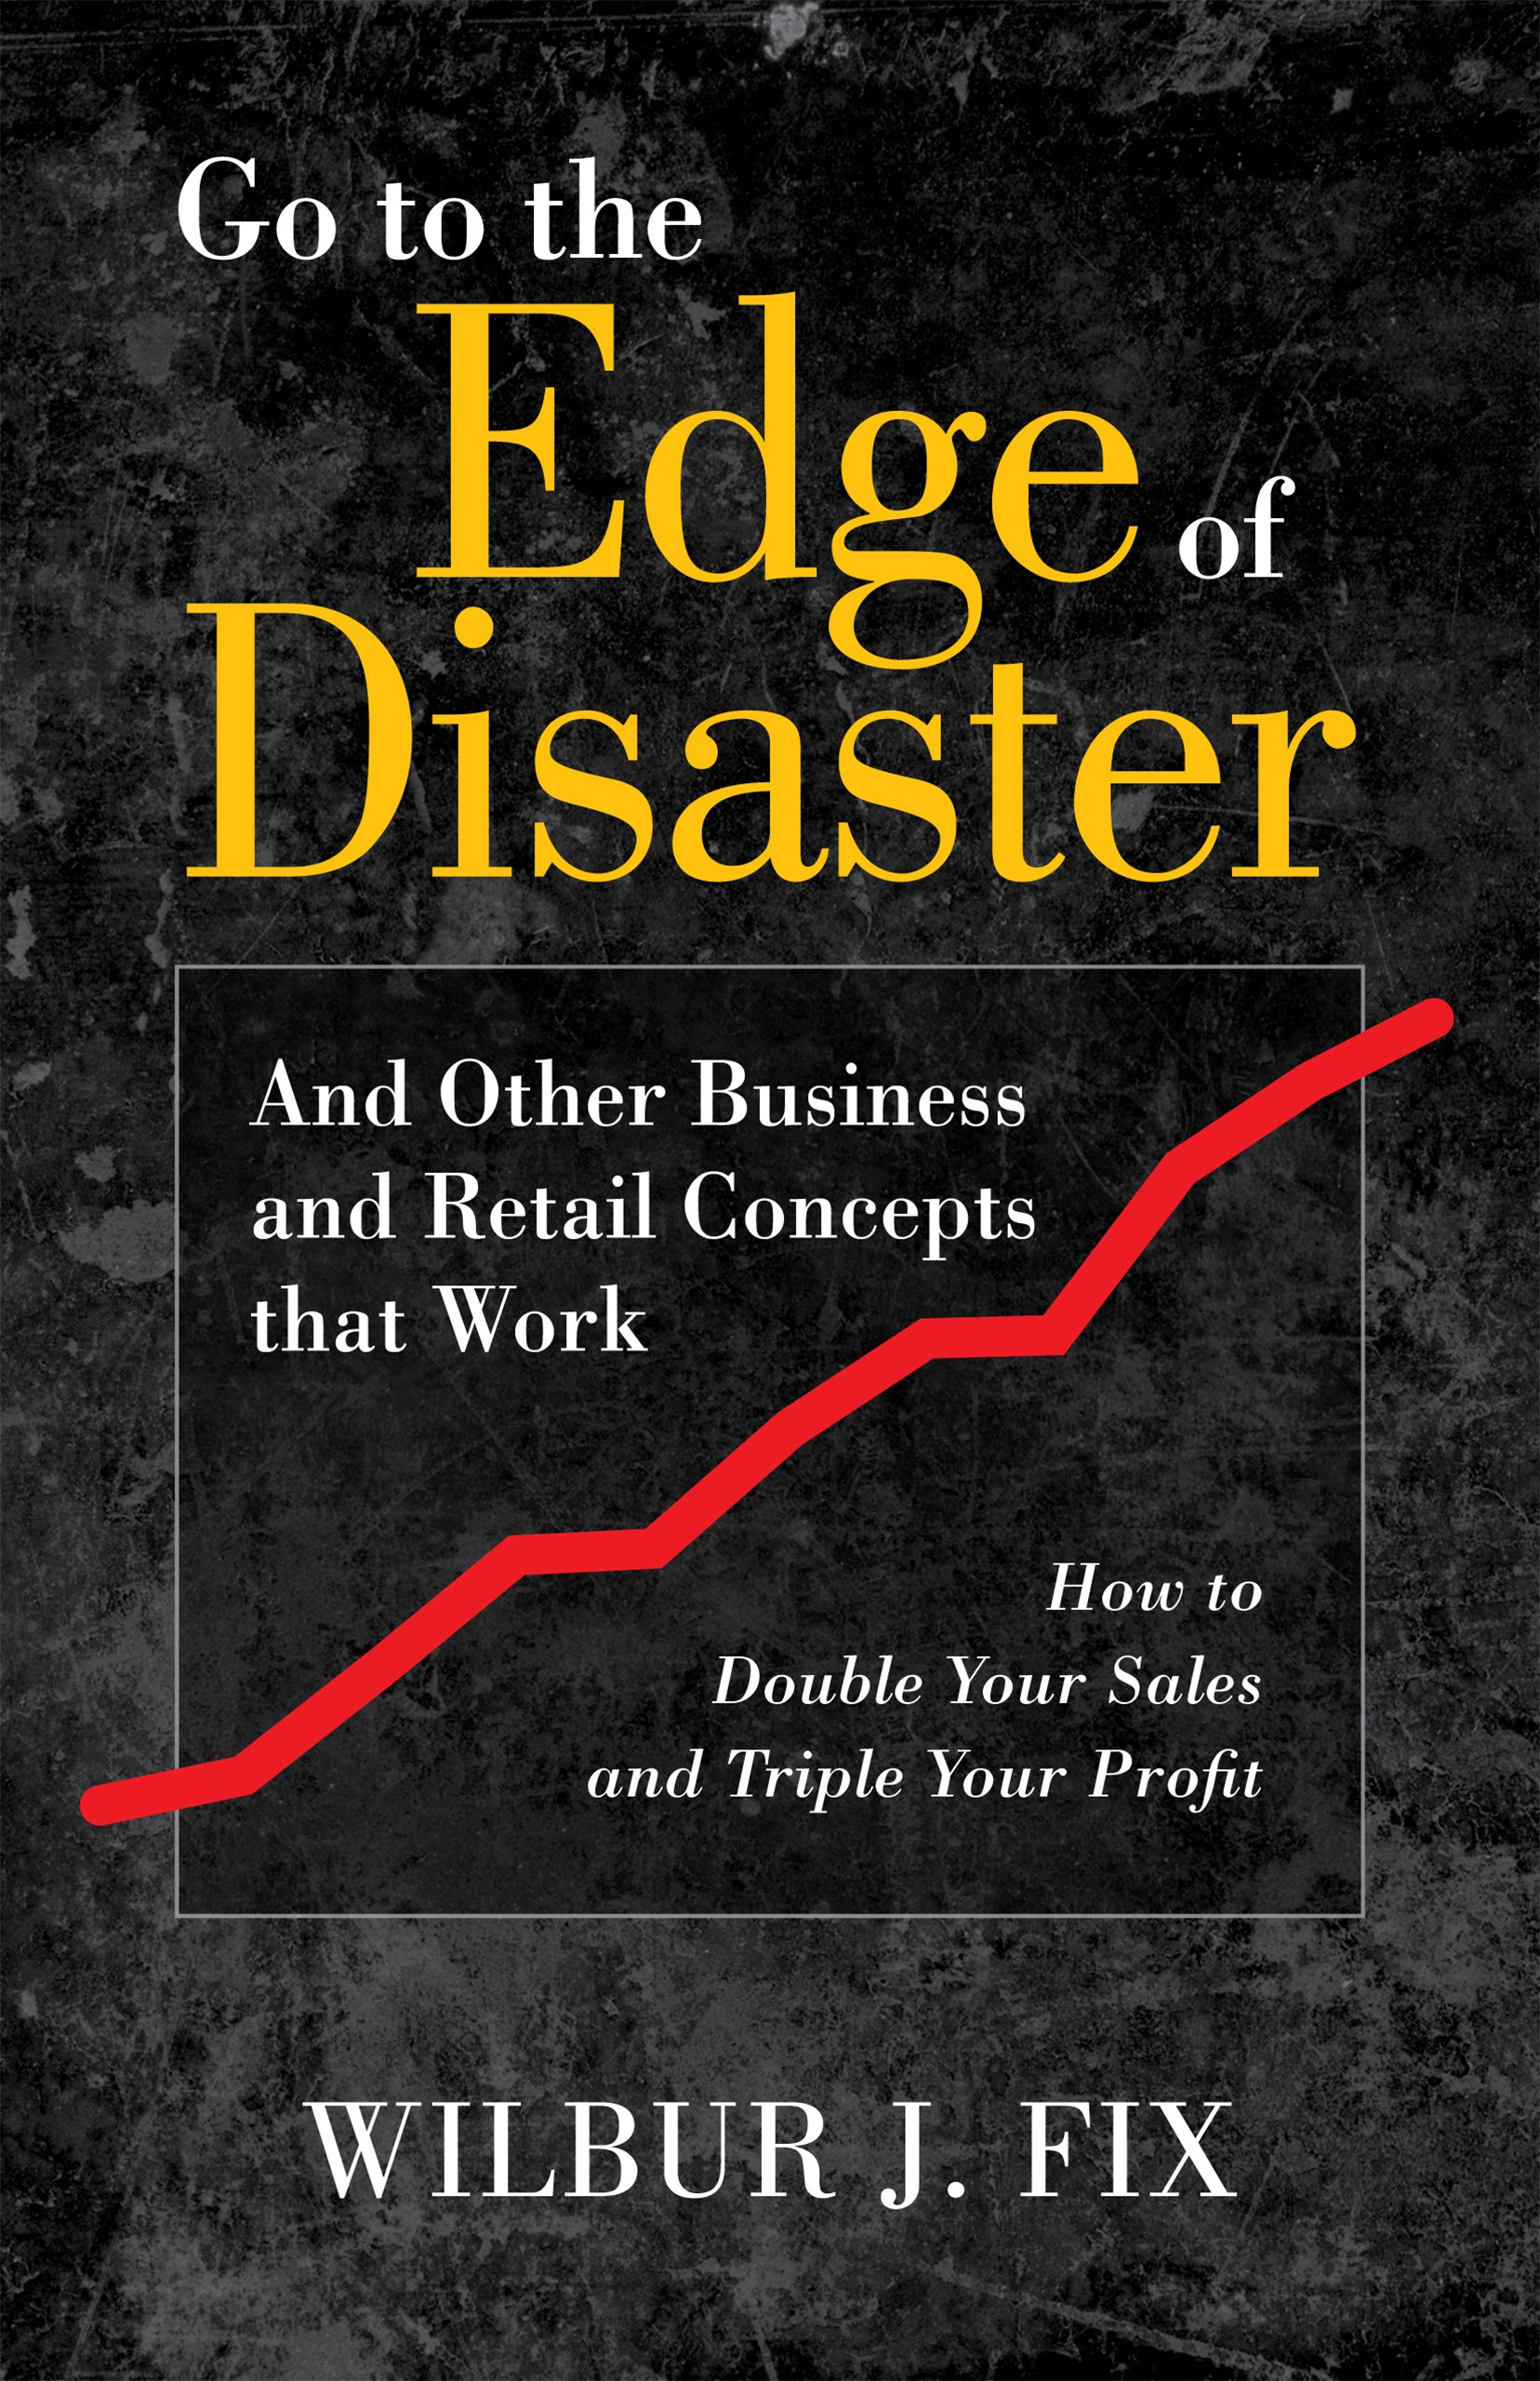 Download Go to the Edge of Disaster and Other Business and Retail Concepts that Work PDF